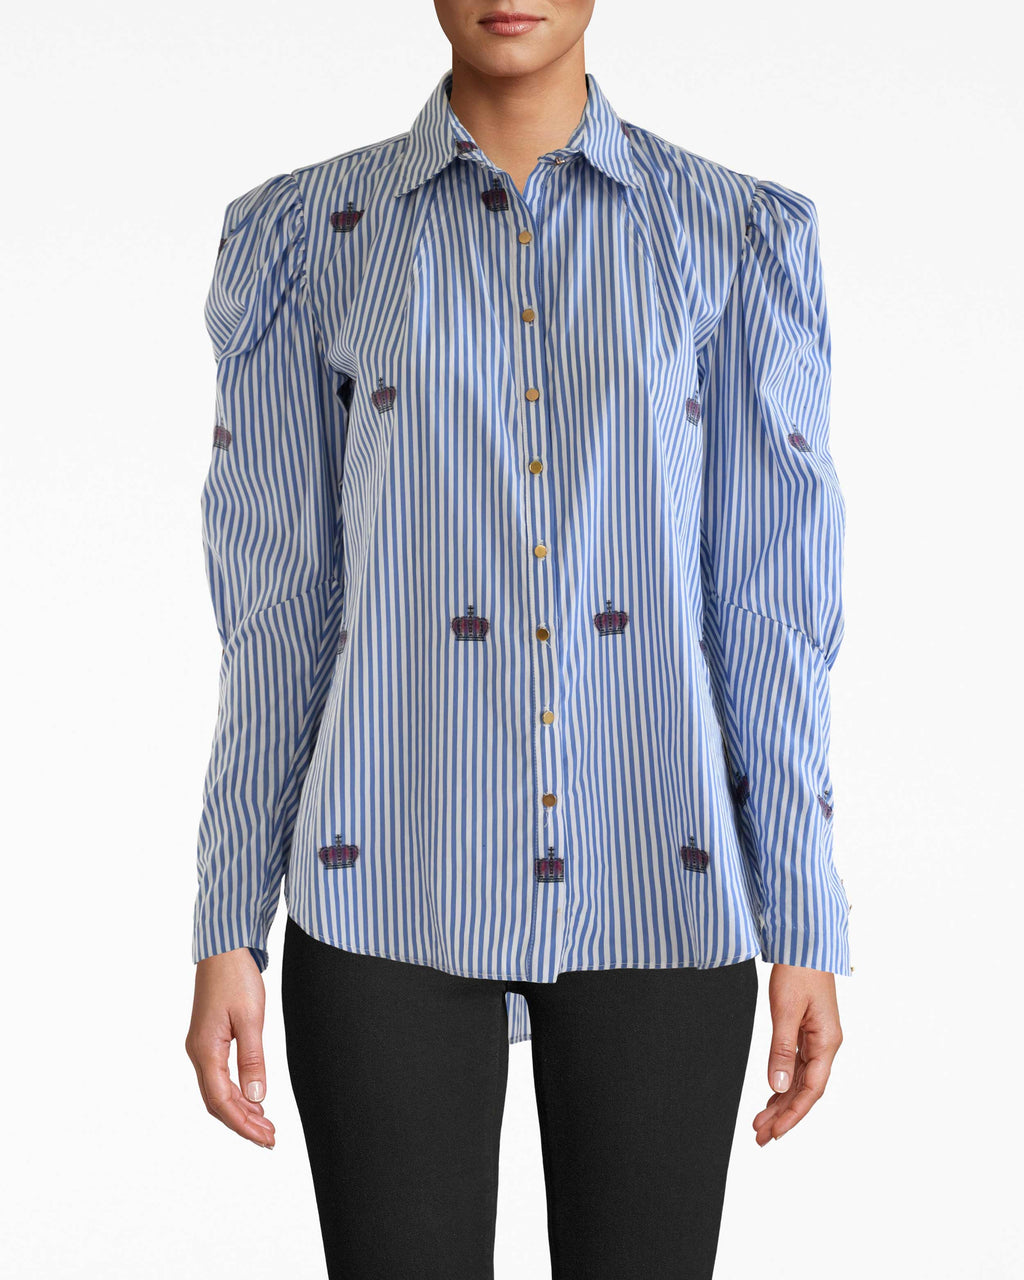 CT18192 - CROWN STRIPE PUFF SLEEVE BOYFRIEND TOP - tops - blouses - Straight from the fall 2020 runway, this crown stripe boyfriend blouse features crown motifs on a classic blue and white stripe with slightly puffed sleeves. Add 1 line break Stylist Tip: Style with denim shorts and white sneakers.